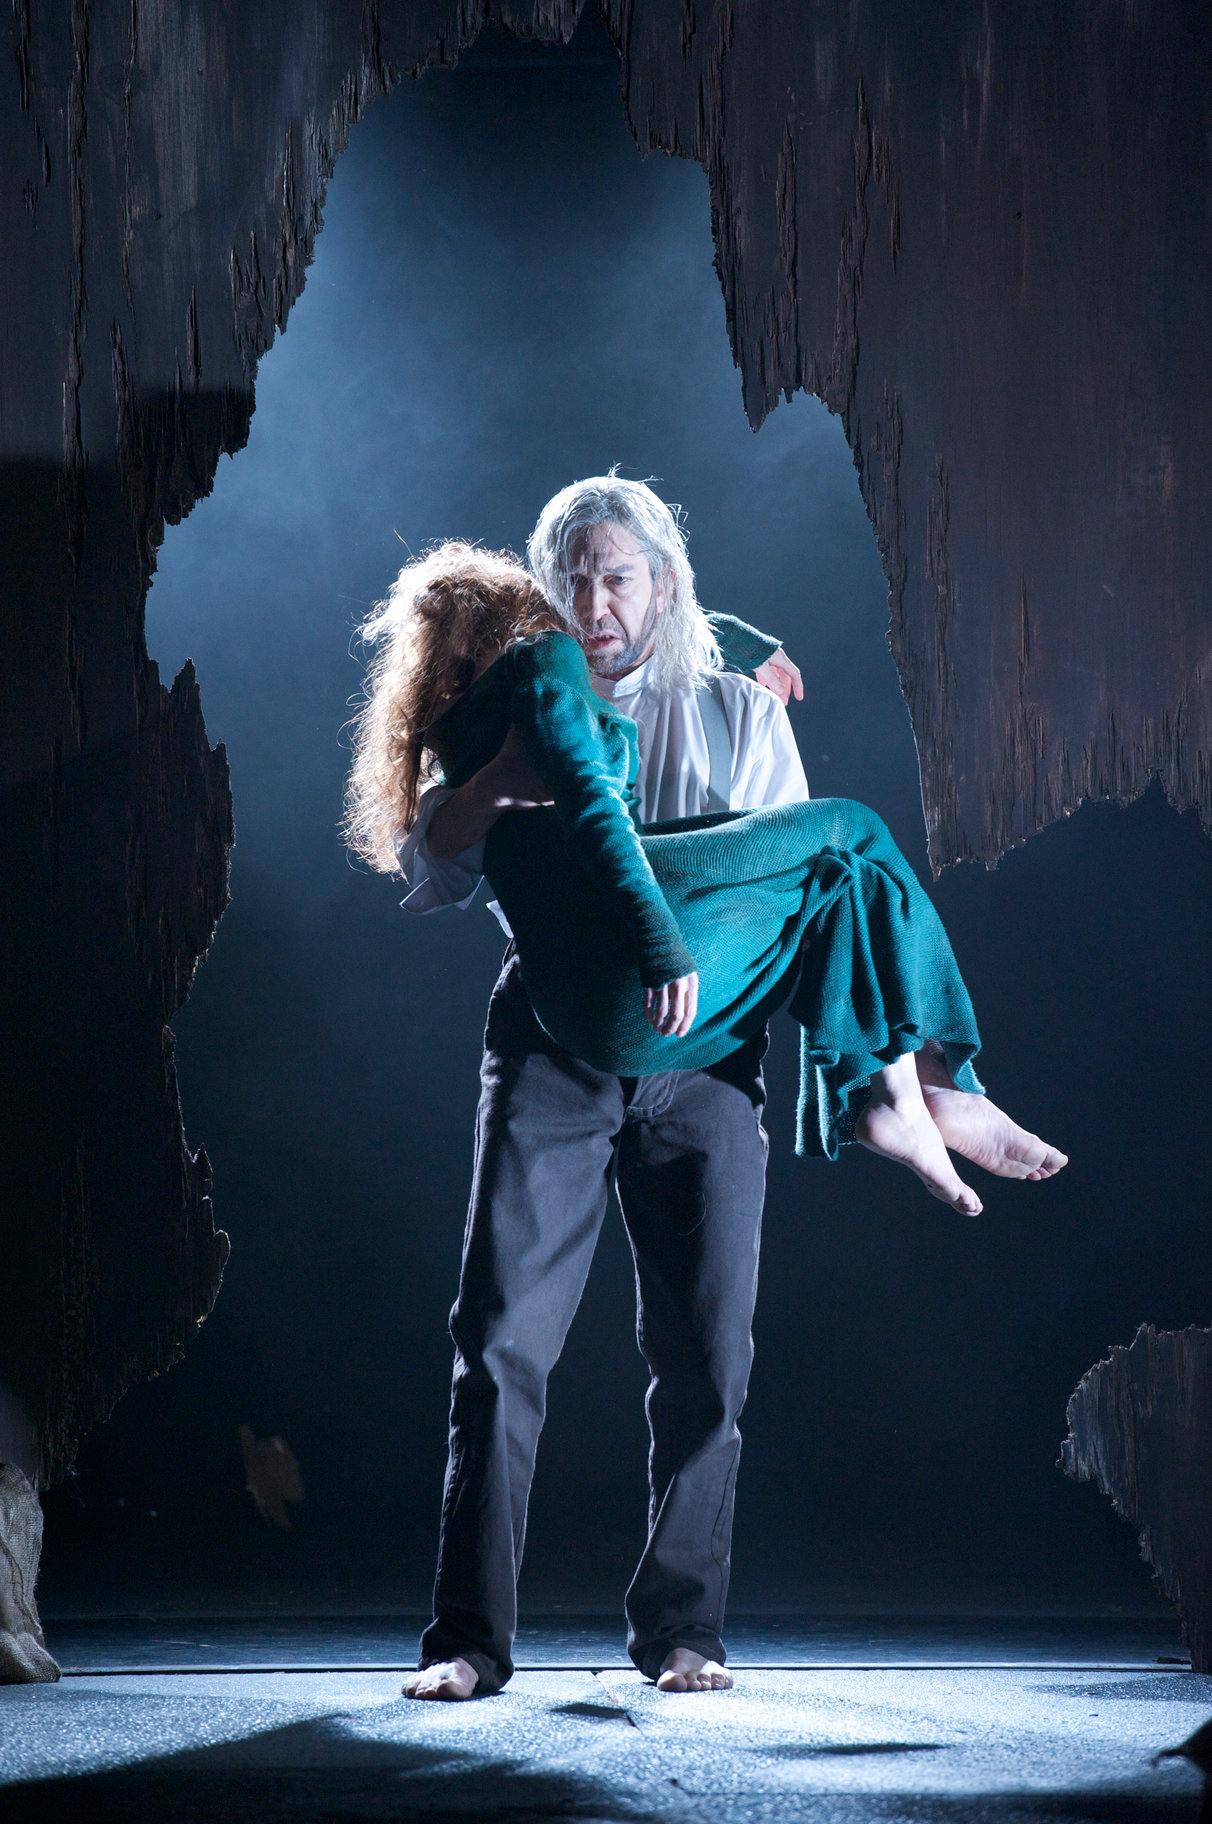 A man carries the body of a woman through a cave.